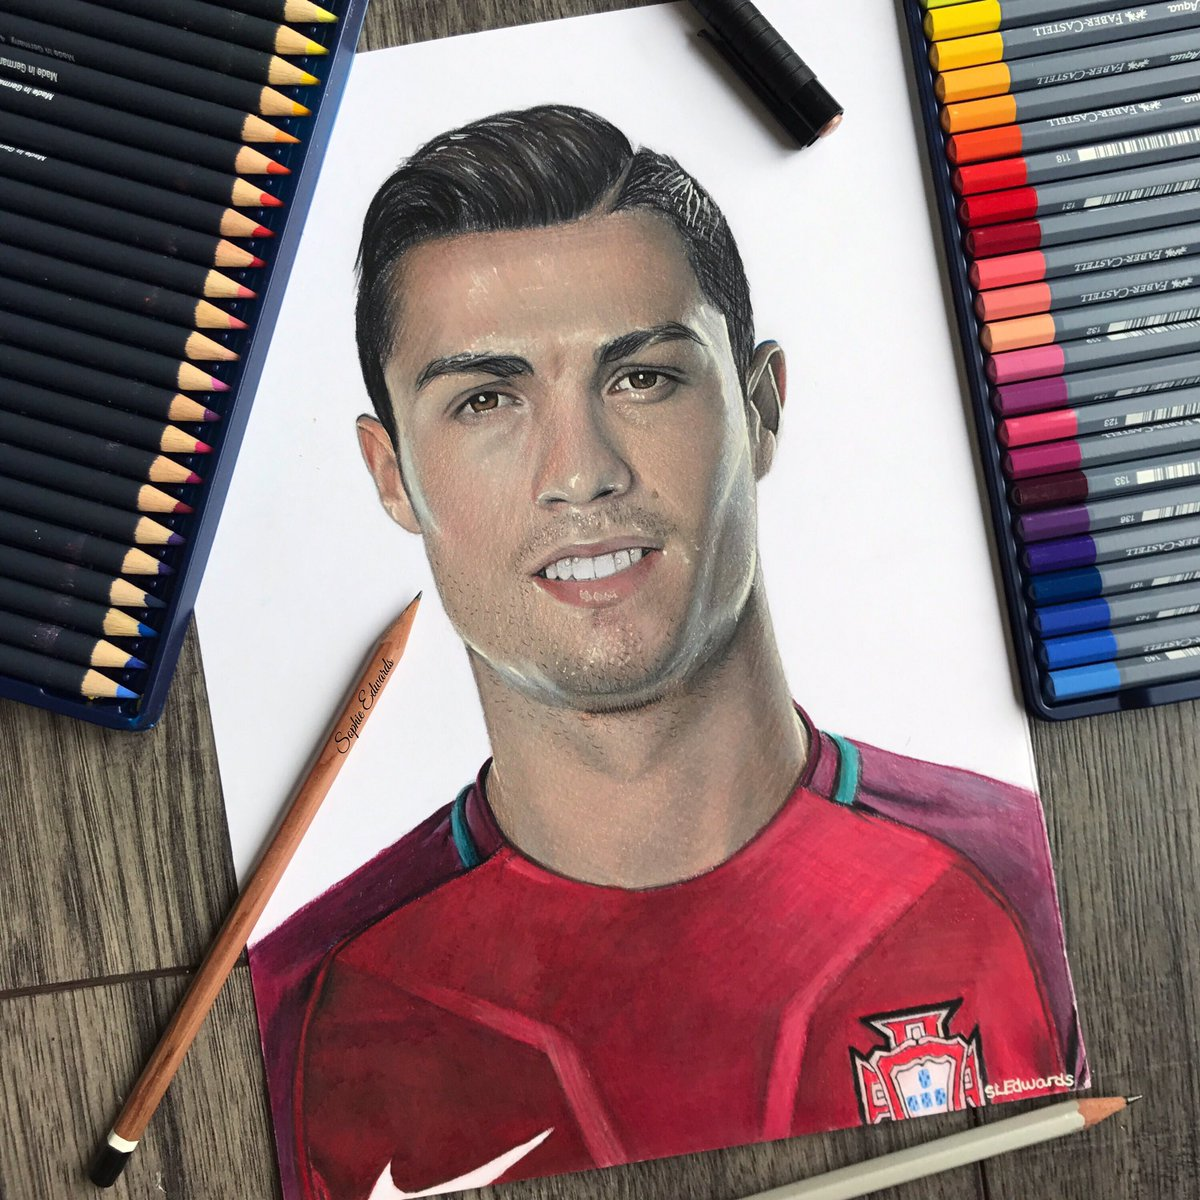 Sophie edwards on twitter colour pencil drawing of cristiano ⚽ 🏆 cristiano ronaldo worldcup2018 worldcup cristianoronaldo